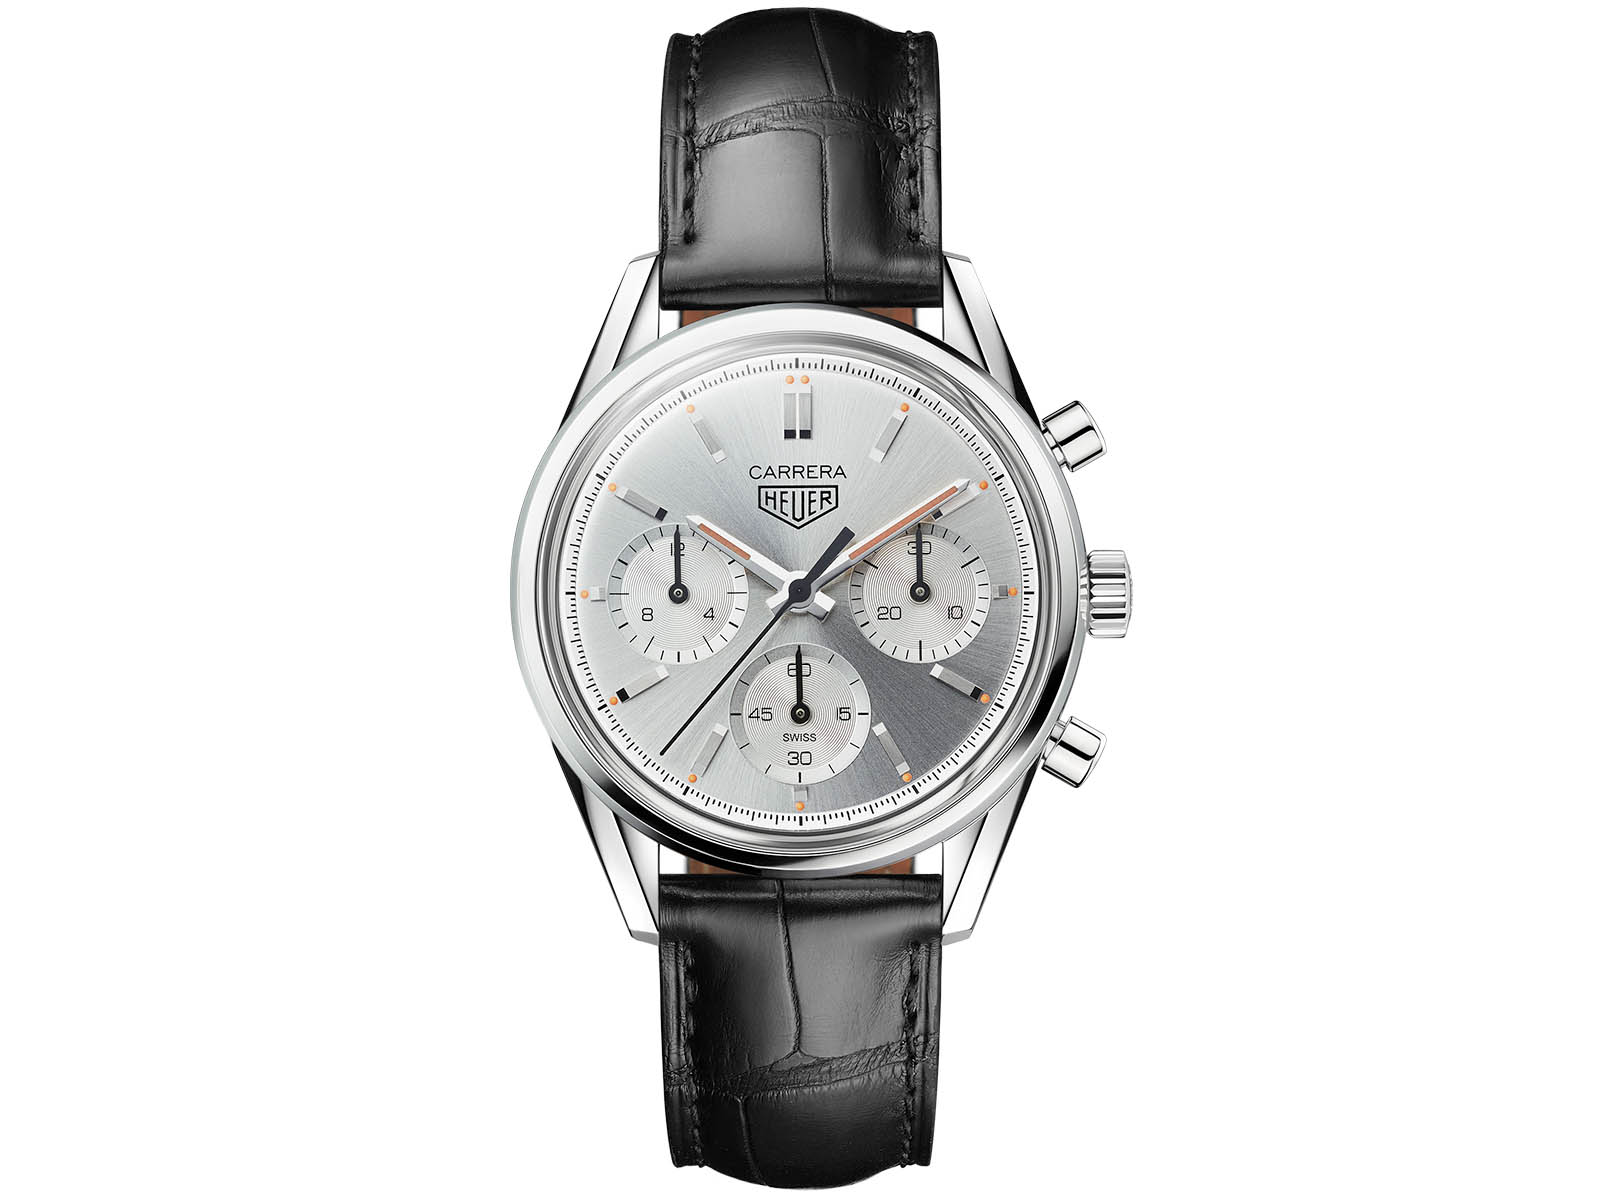 cbk221b-fc6479-tag-heuer-carrera-160-years-silver-limited-edition-2.jpg